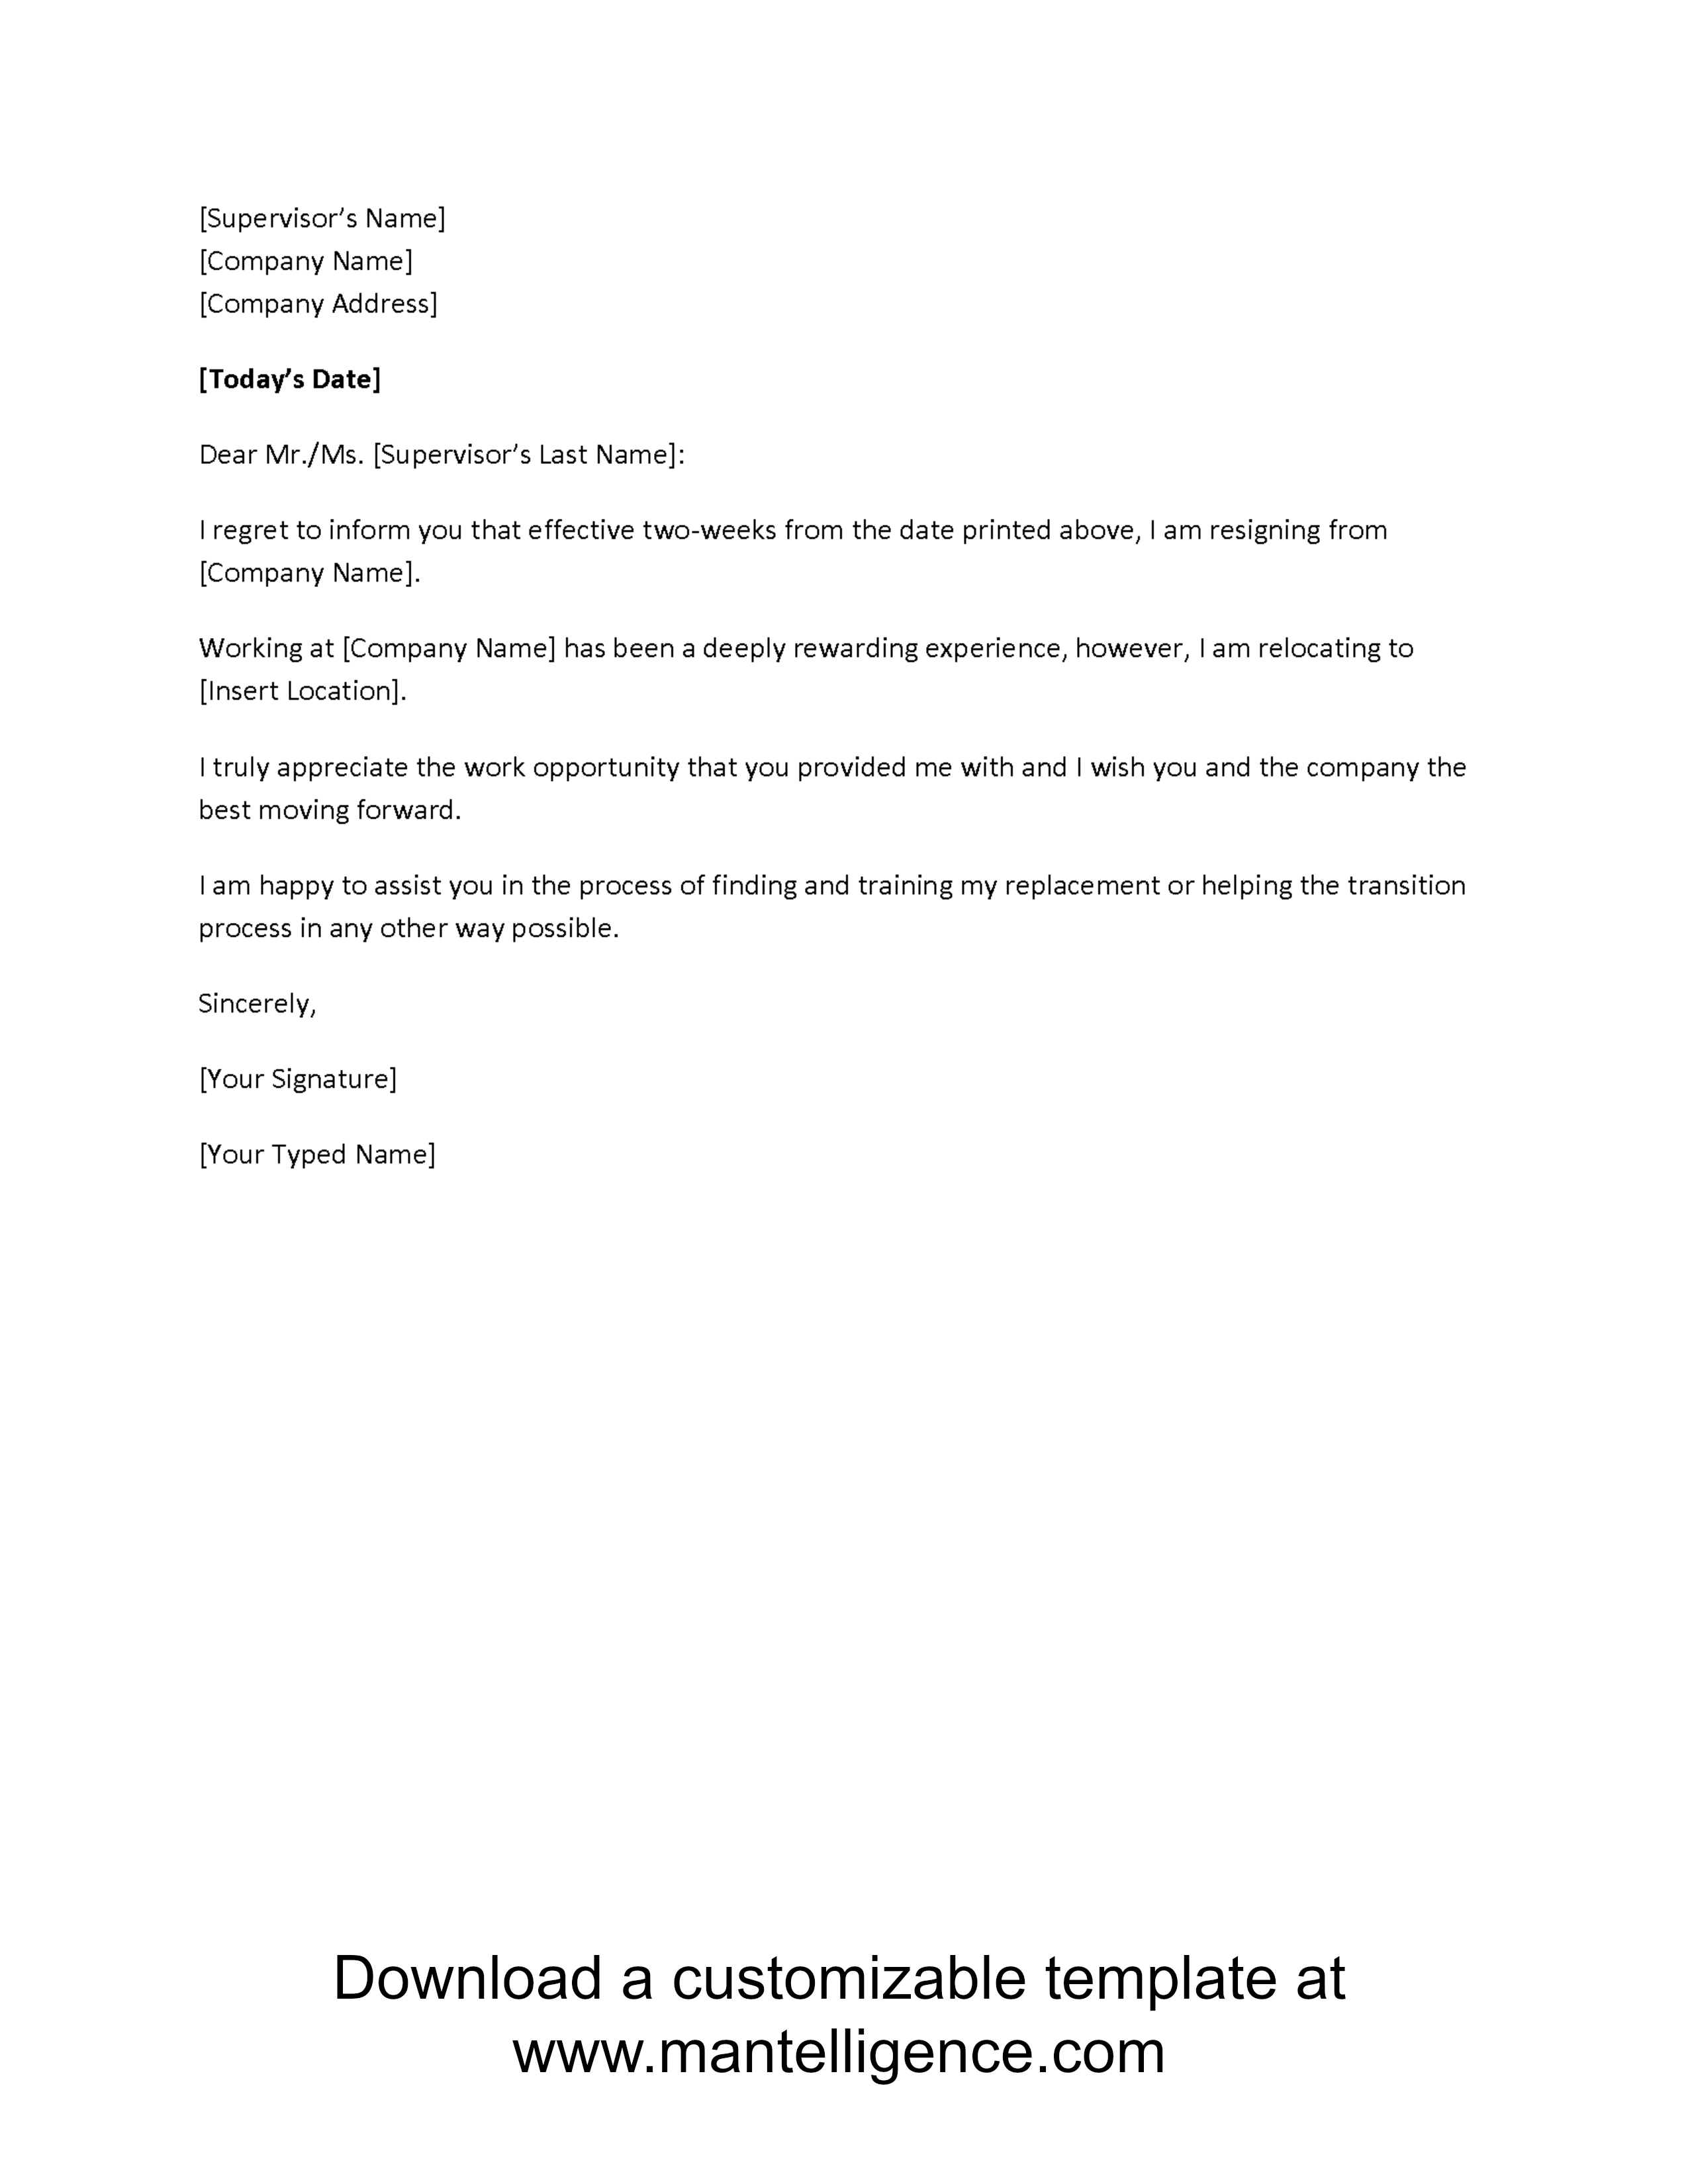 Judgement Proof Letter Template - 3 Highly Professional Two Weeks Notice Letter Templates